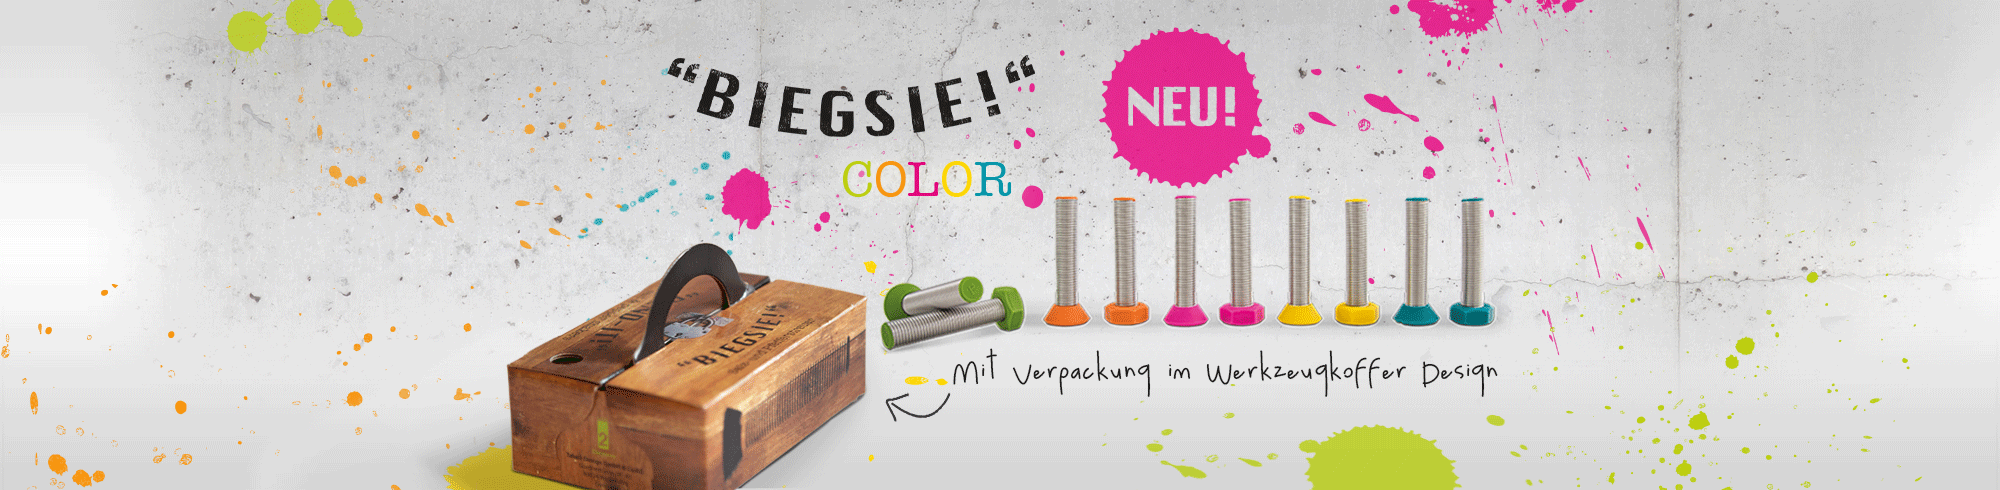 Biegsie Color Edition